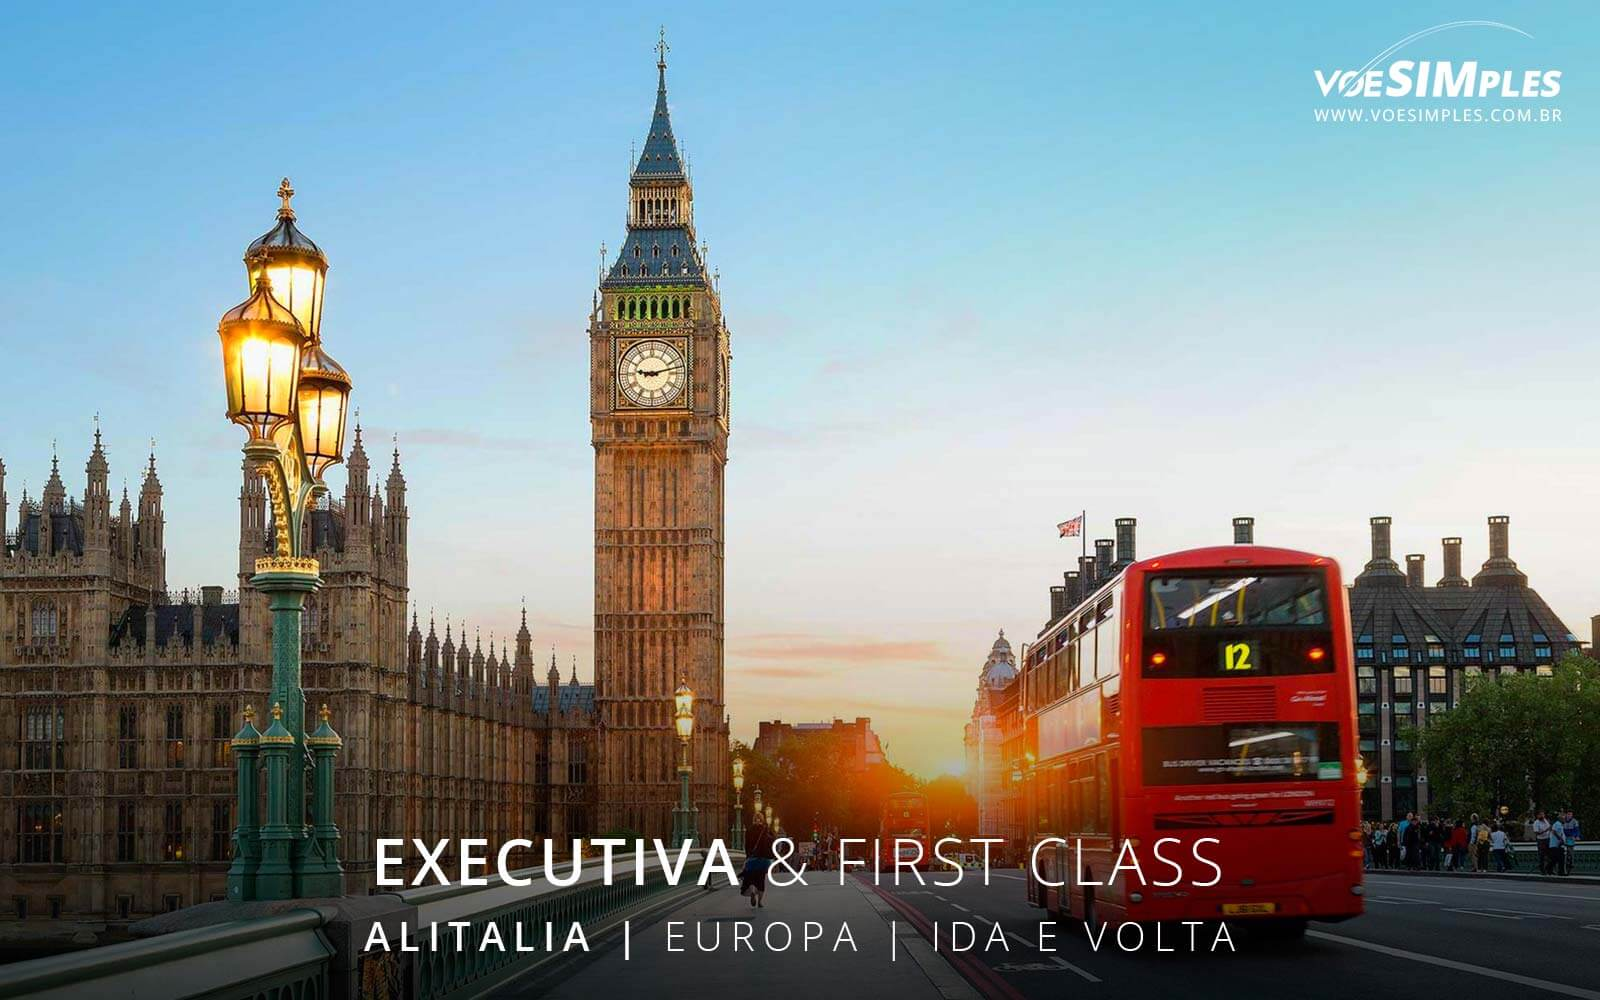 passagens-aereas-executiva-baratas-local-pais-europa-voe-simples-passages-aereas-promocionais-executivas-pais-passagem-promo-executiva-local